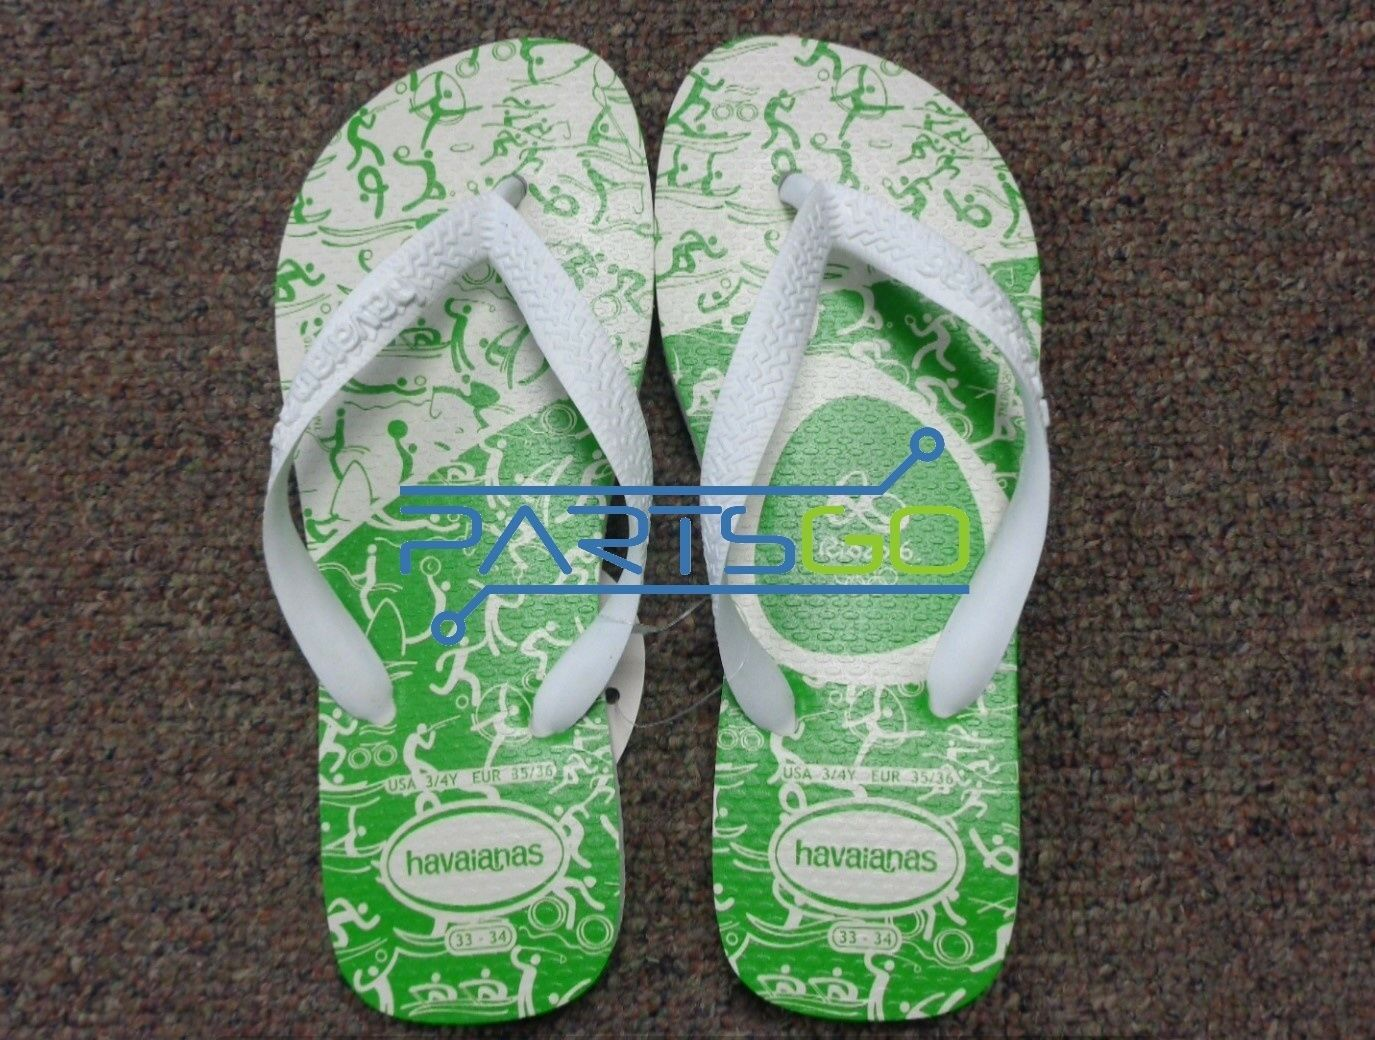 cdd62433c Details about Havaianas Rio 2016 Limited Edition Flip Flops Size USA 3 4Y  New! Original!  USA